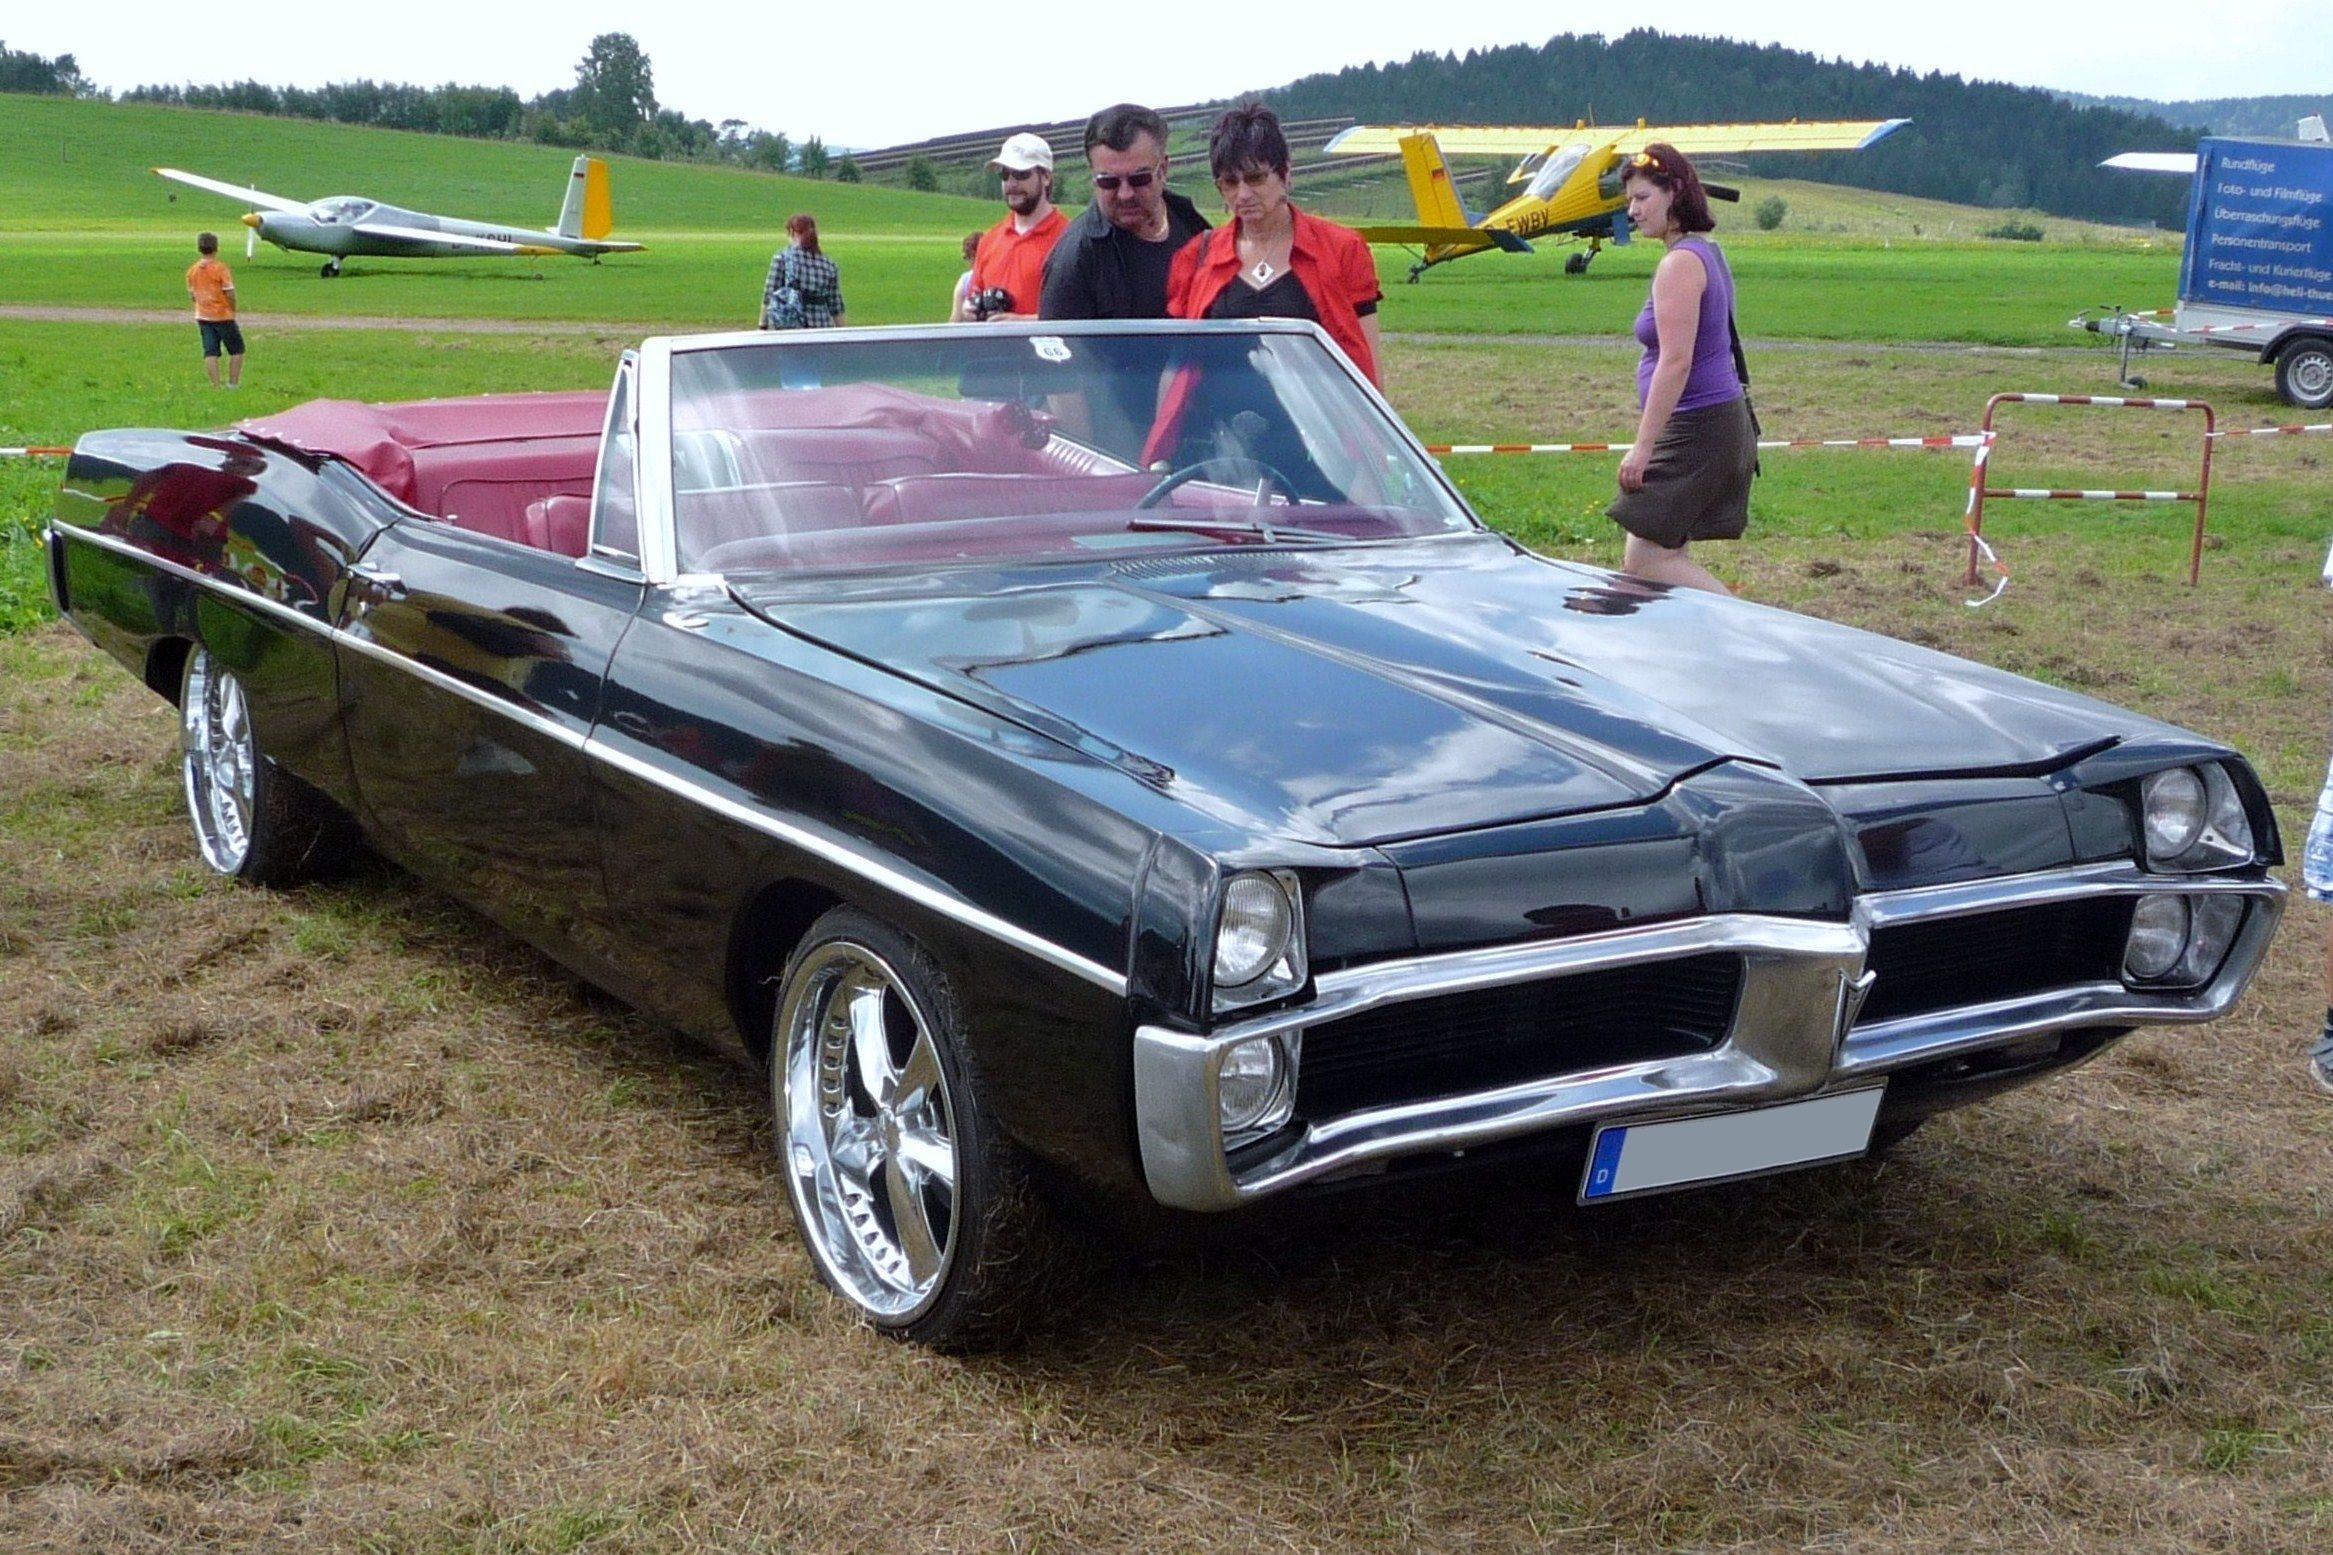 67 Pontiac Catalina Convertible Kind Of Surprised There Aren T More People Looking At It Maybe Was A Private Viewing